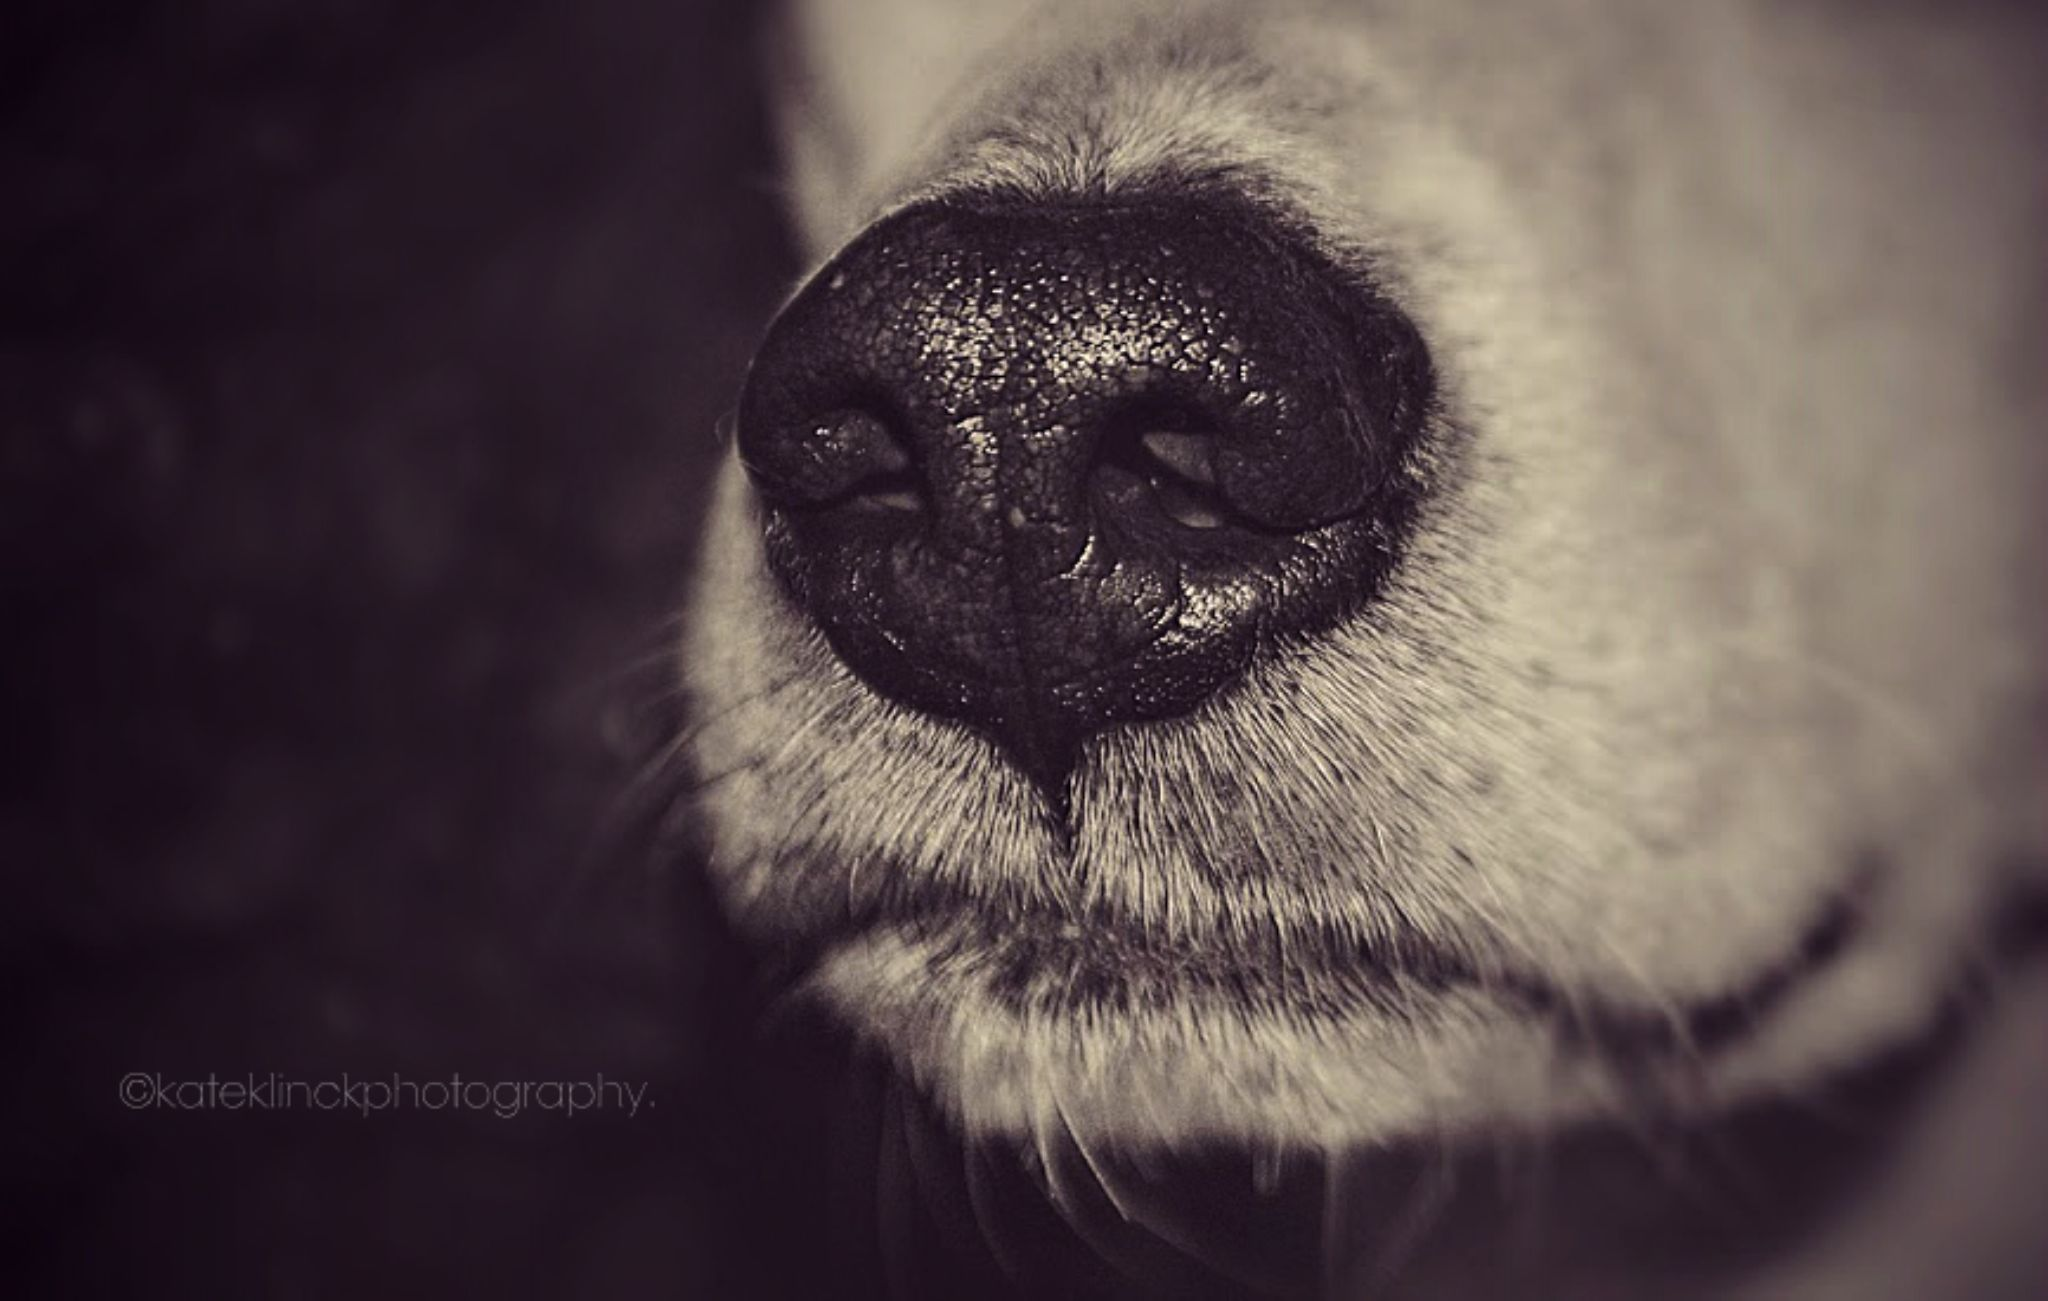 A Very Wet Nose. by katherine.klinck